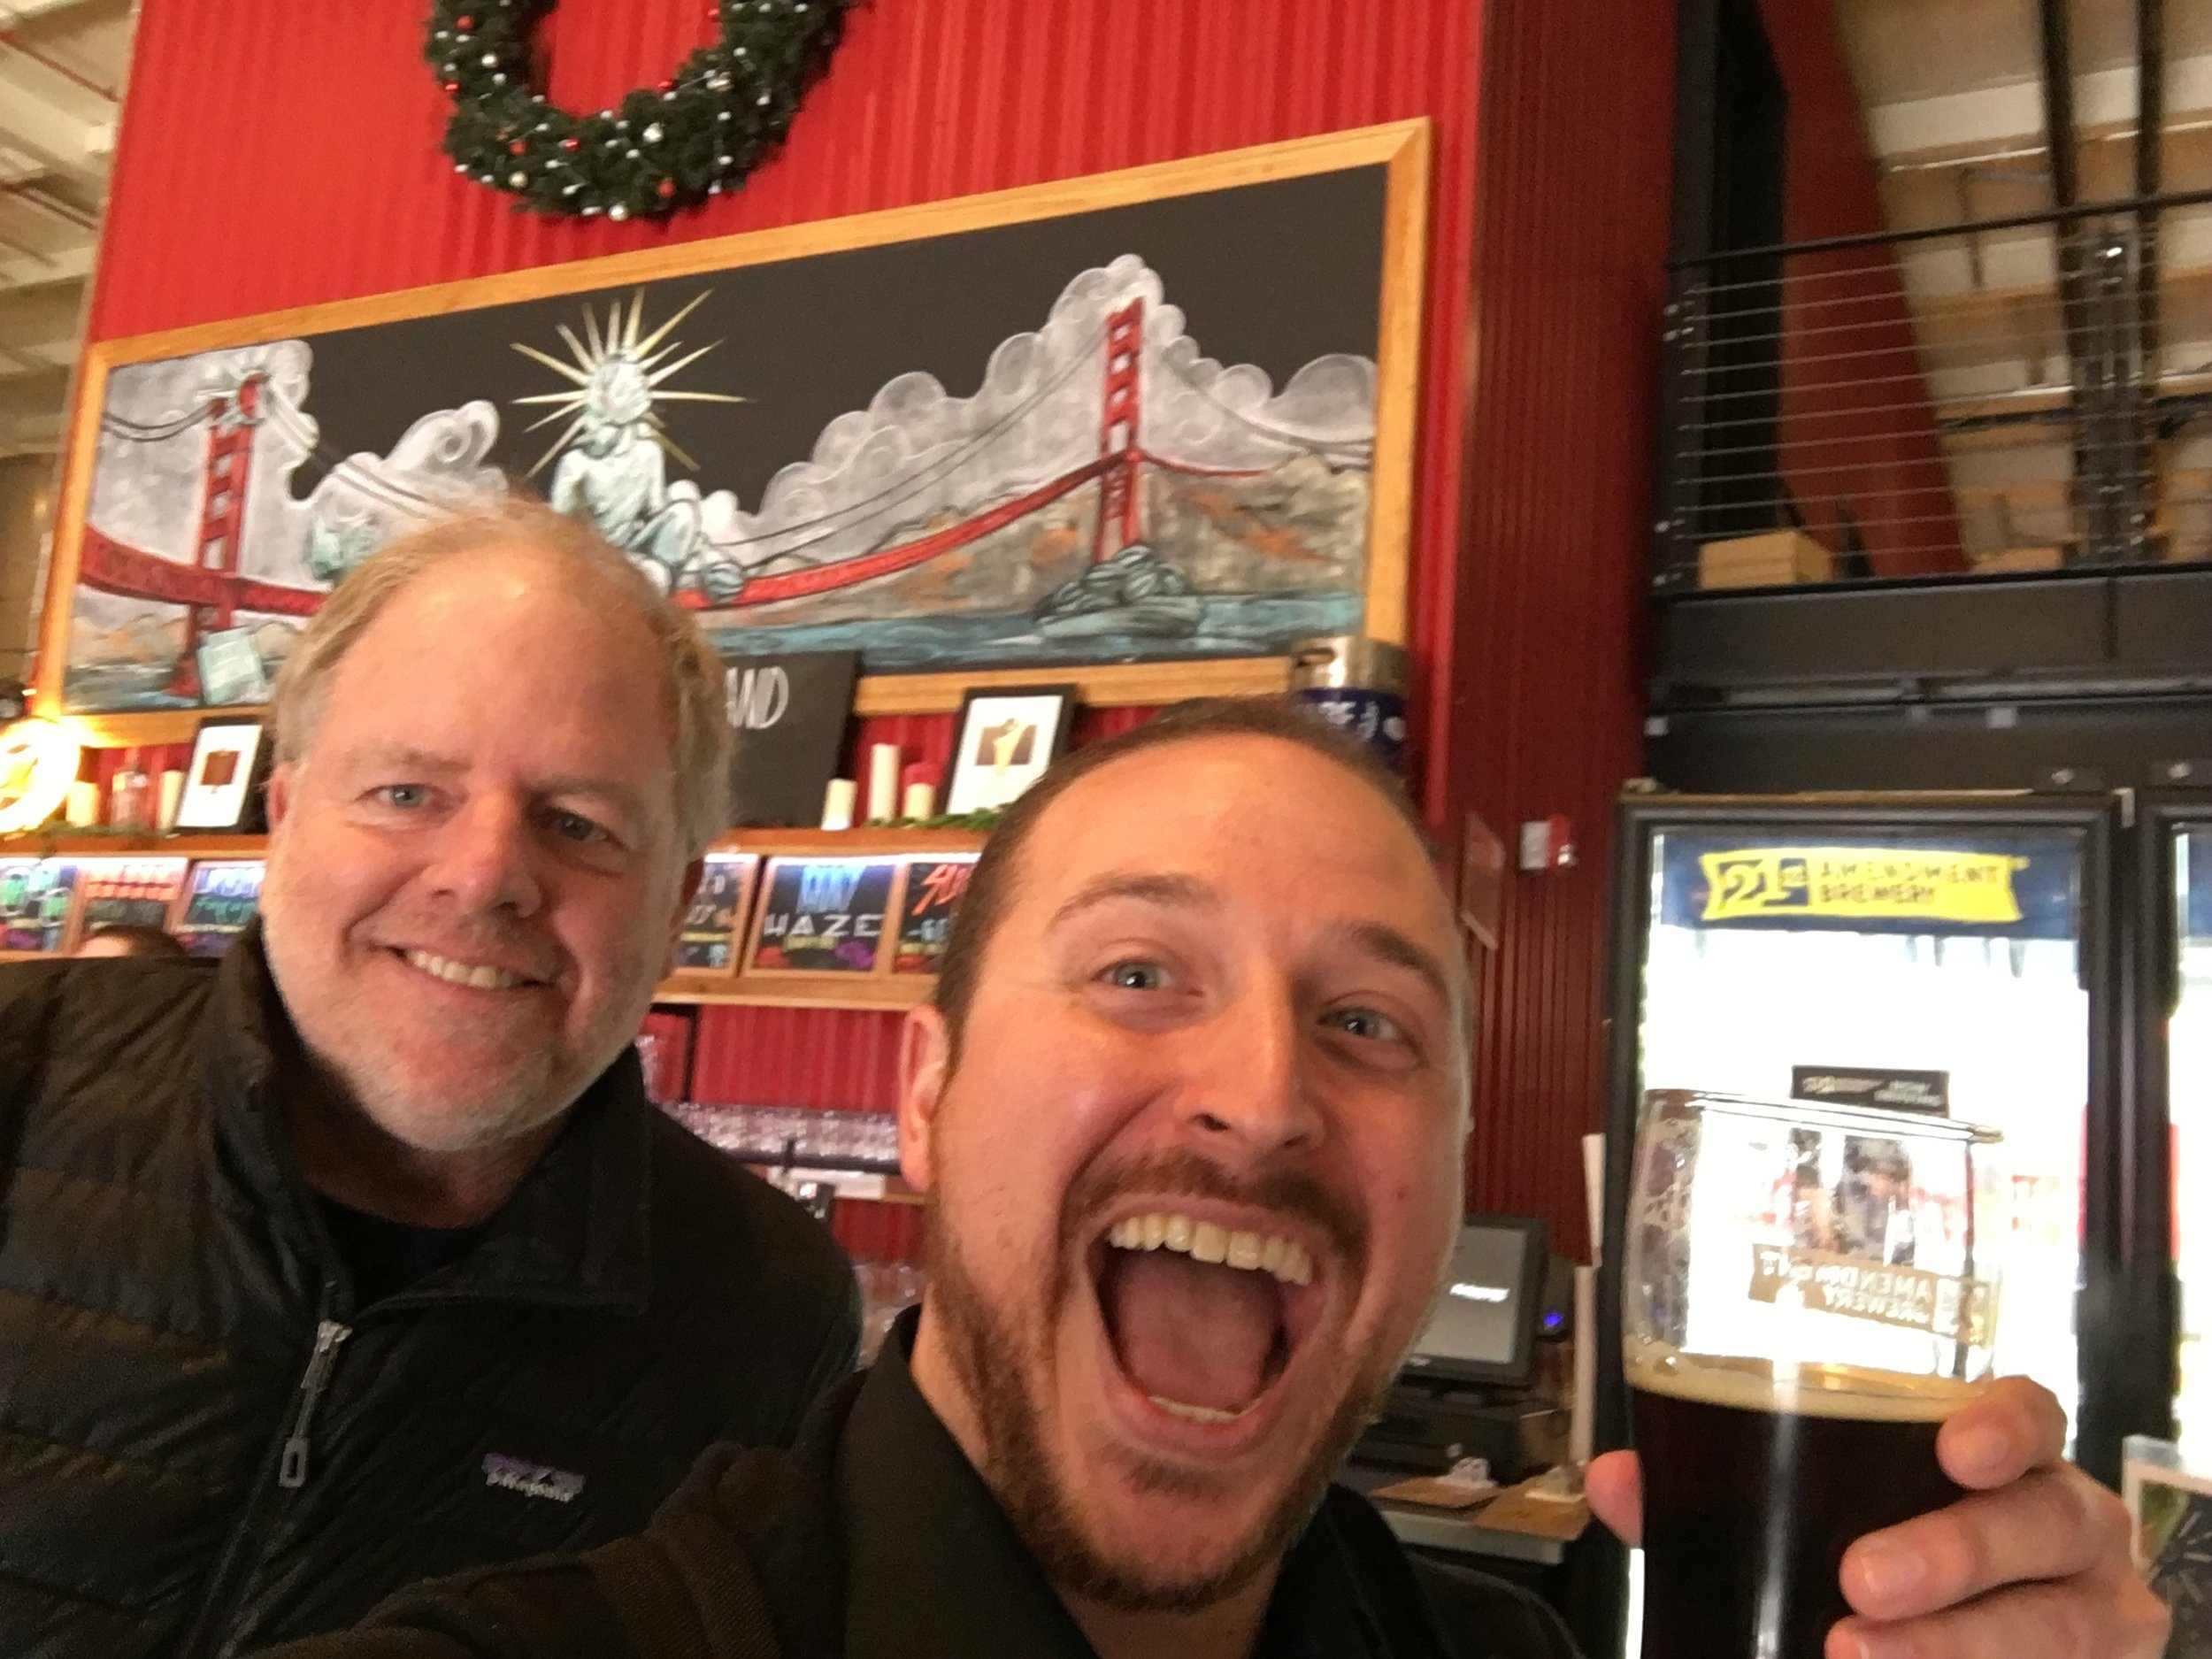 21st Amendment Brewing's co-founder and brewmaster Shaun O'Sullivan and West Coast Avenger Gregg (pictured: the delicious Fireside Chat Winter Spiced Ale)